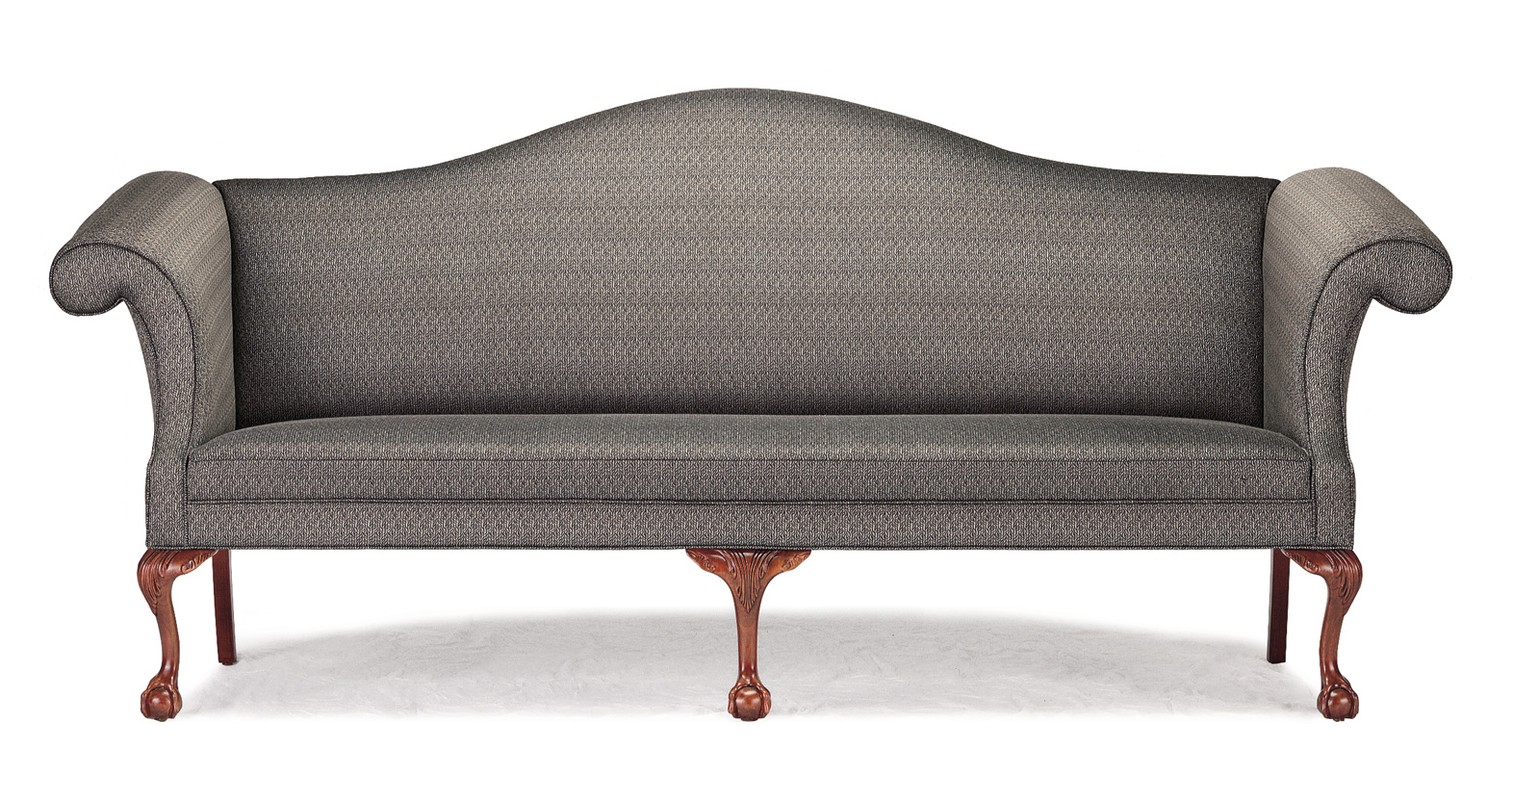 http://trinityfurniture.com/includes/images/zoom/485-P_Web%202.jpg